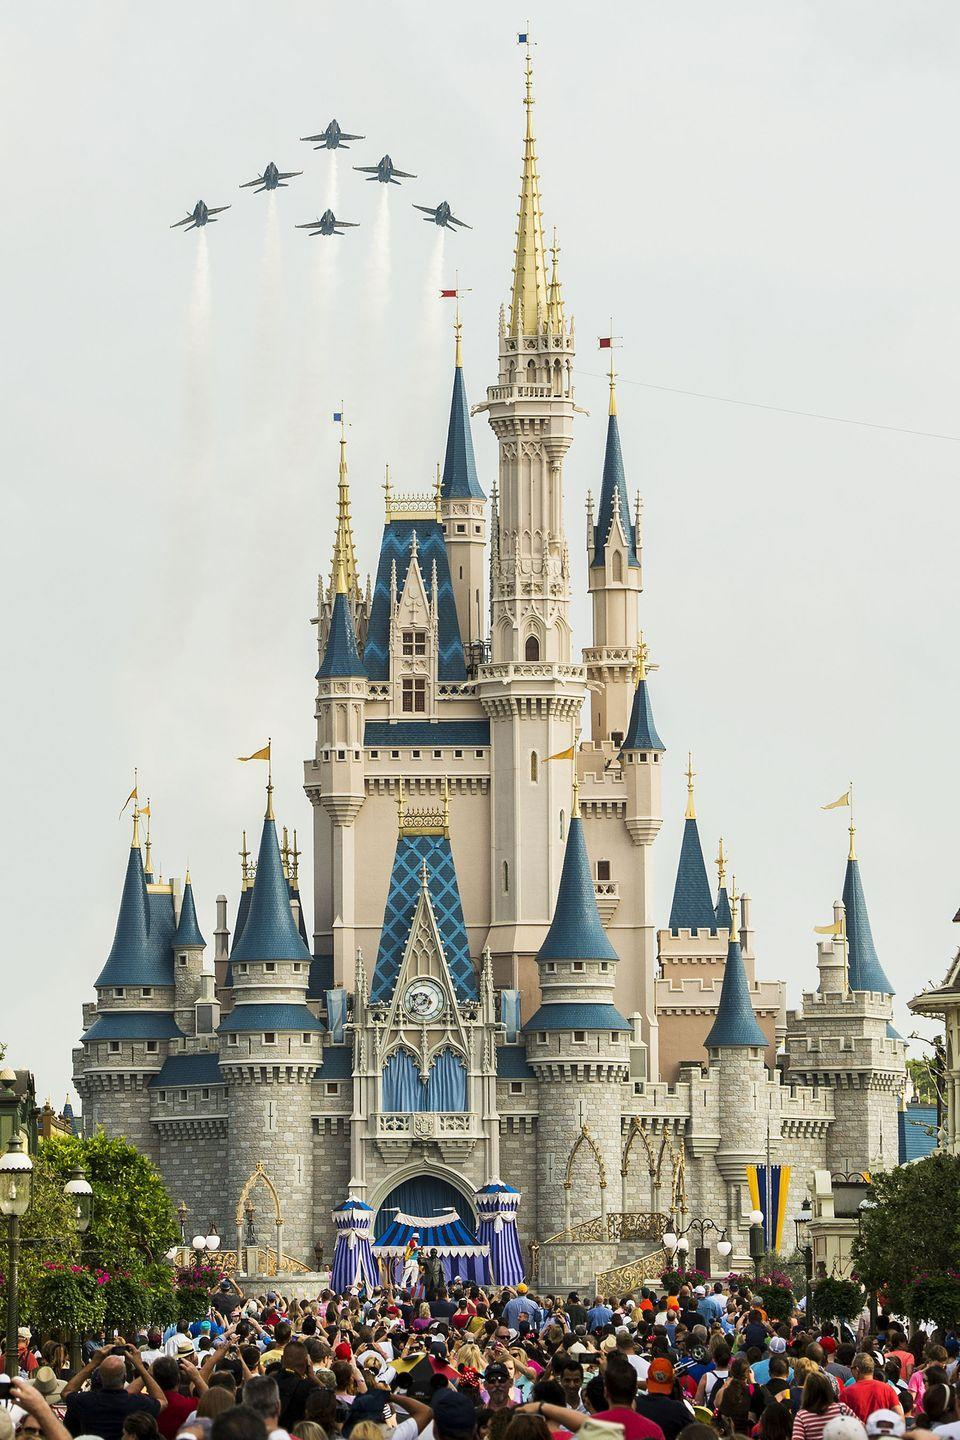 "<p>If you've ever been to Magic Kingdom, do you recall where the castle was located? Some, <a href=""https://www.reddit.com/r/MandelaEffect/comments/3uyecb/disney_world_castle_at_front_of_the_park/"" rel=""nofollow noopener"" target=""_blank"" data-ylk=""slk:even one Orlando local on Reddit"" class=""link rapid-noclick-resp"">even one Orlando local on Reddit</a>, clearly remembers it being the entrance to the park. </p>"